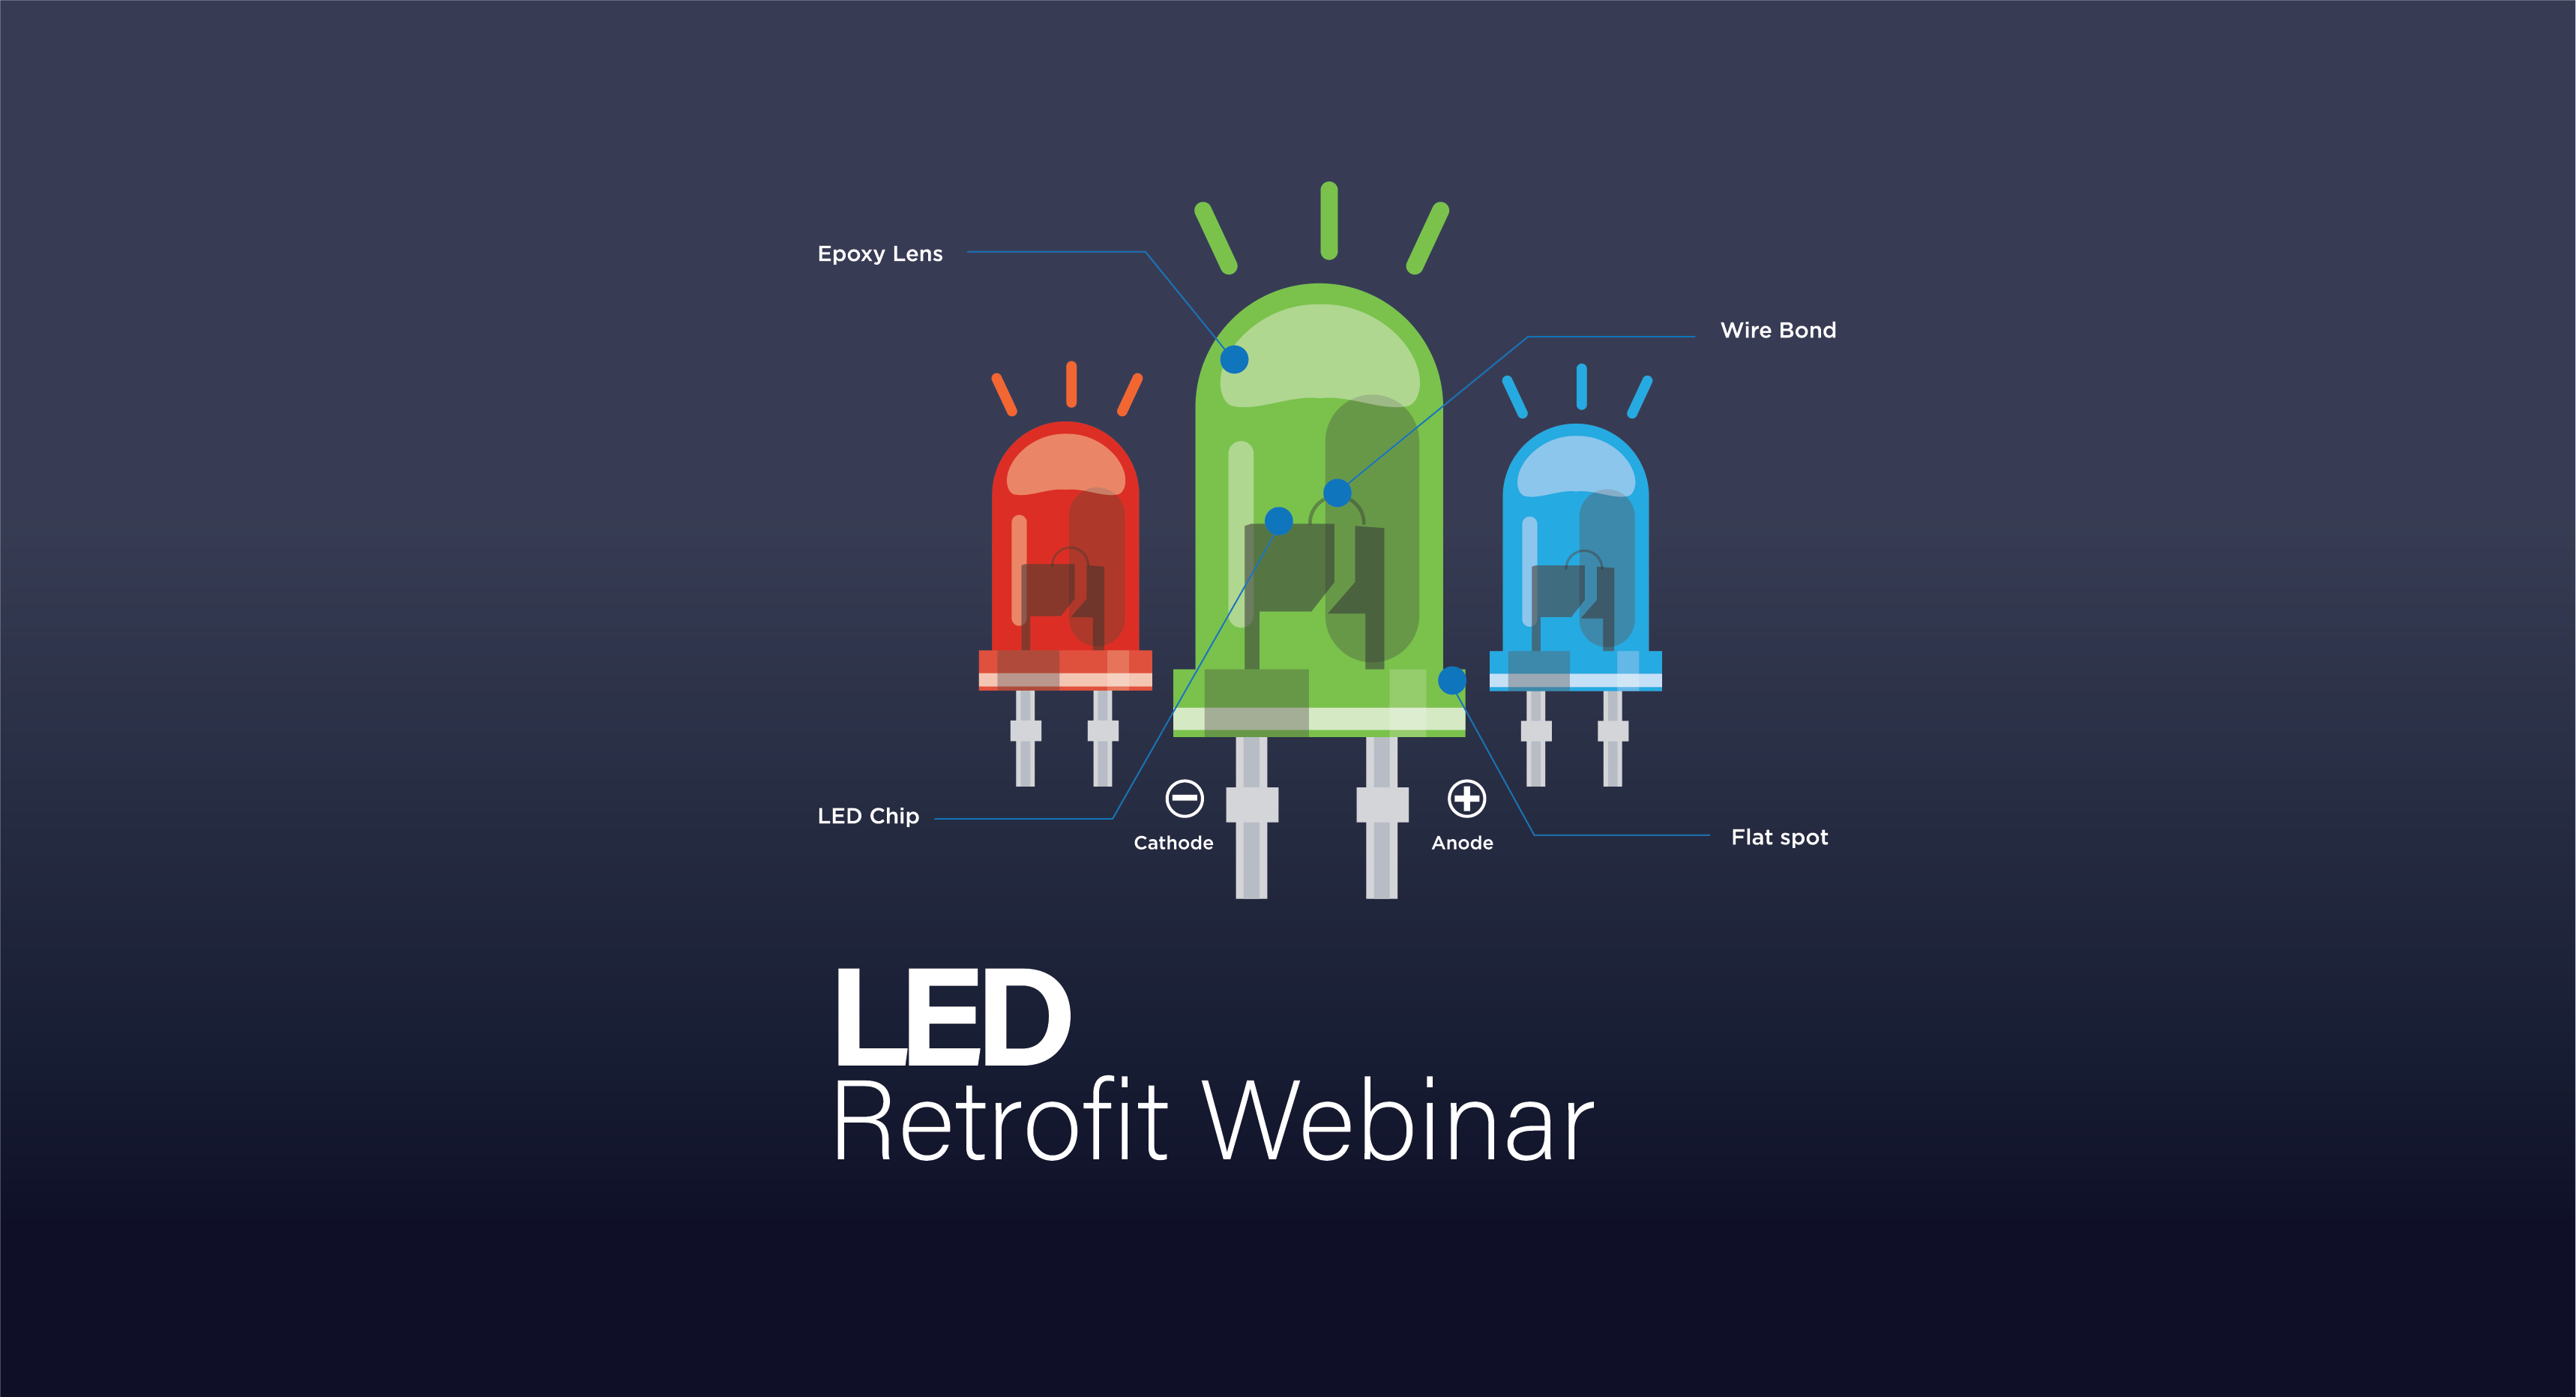 LED Retrofit Webinar